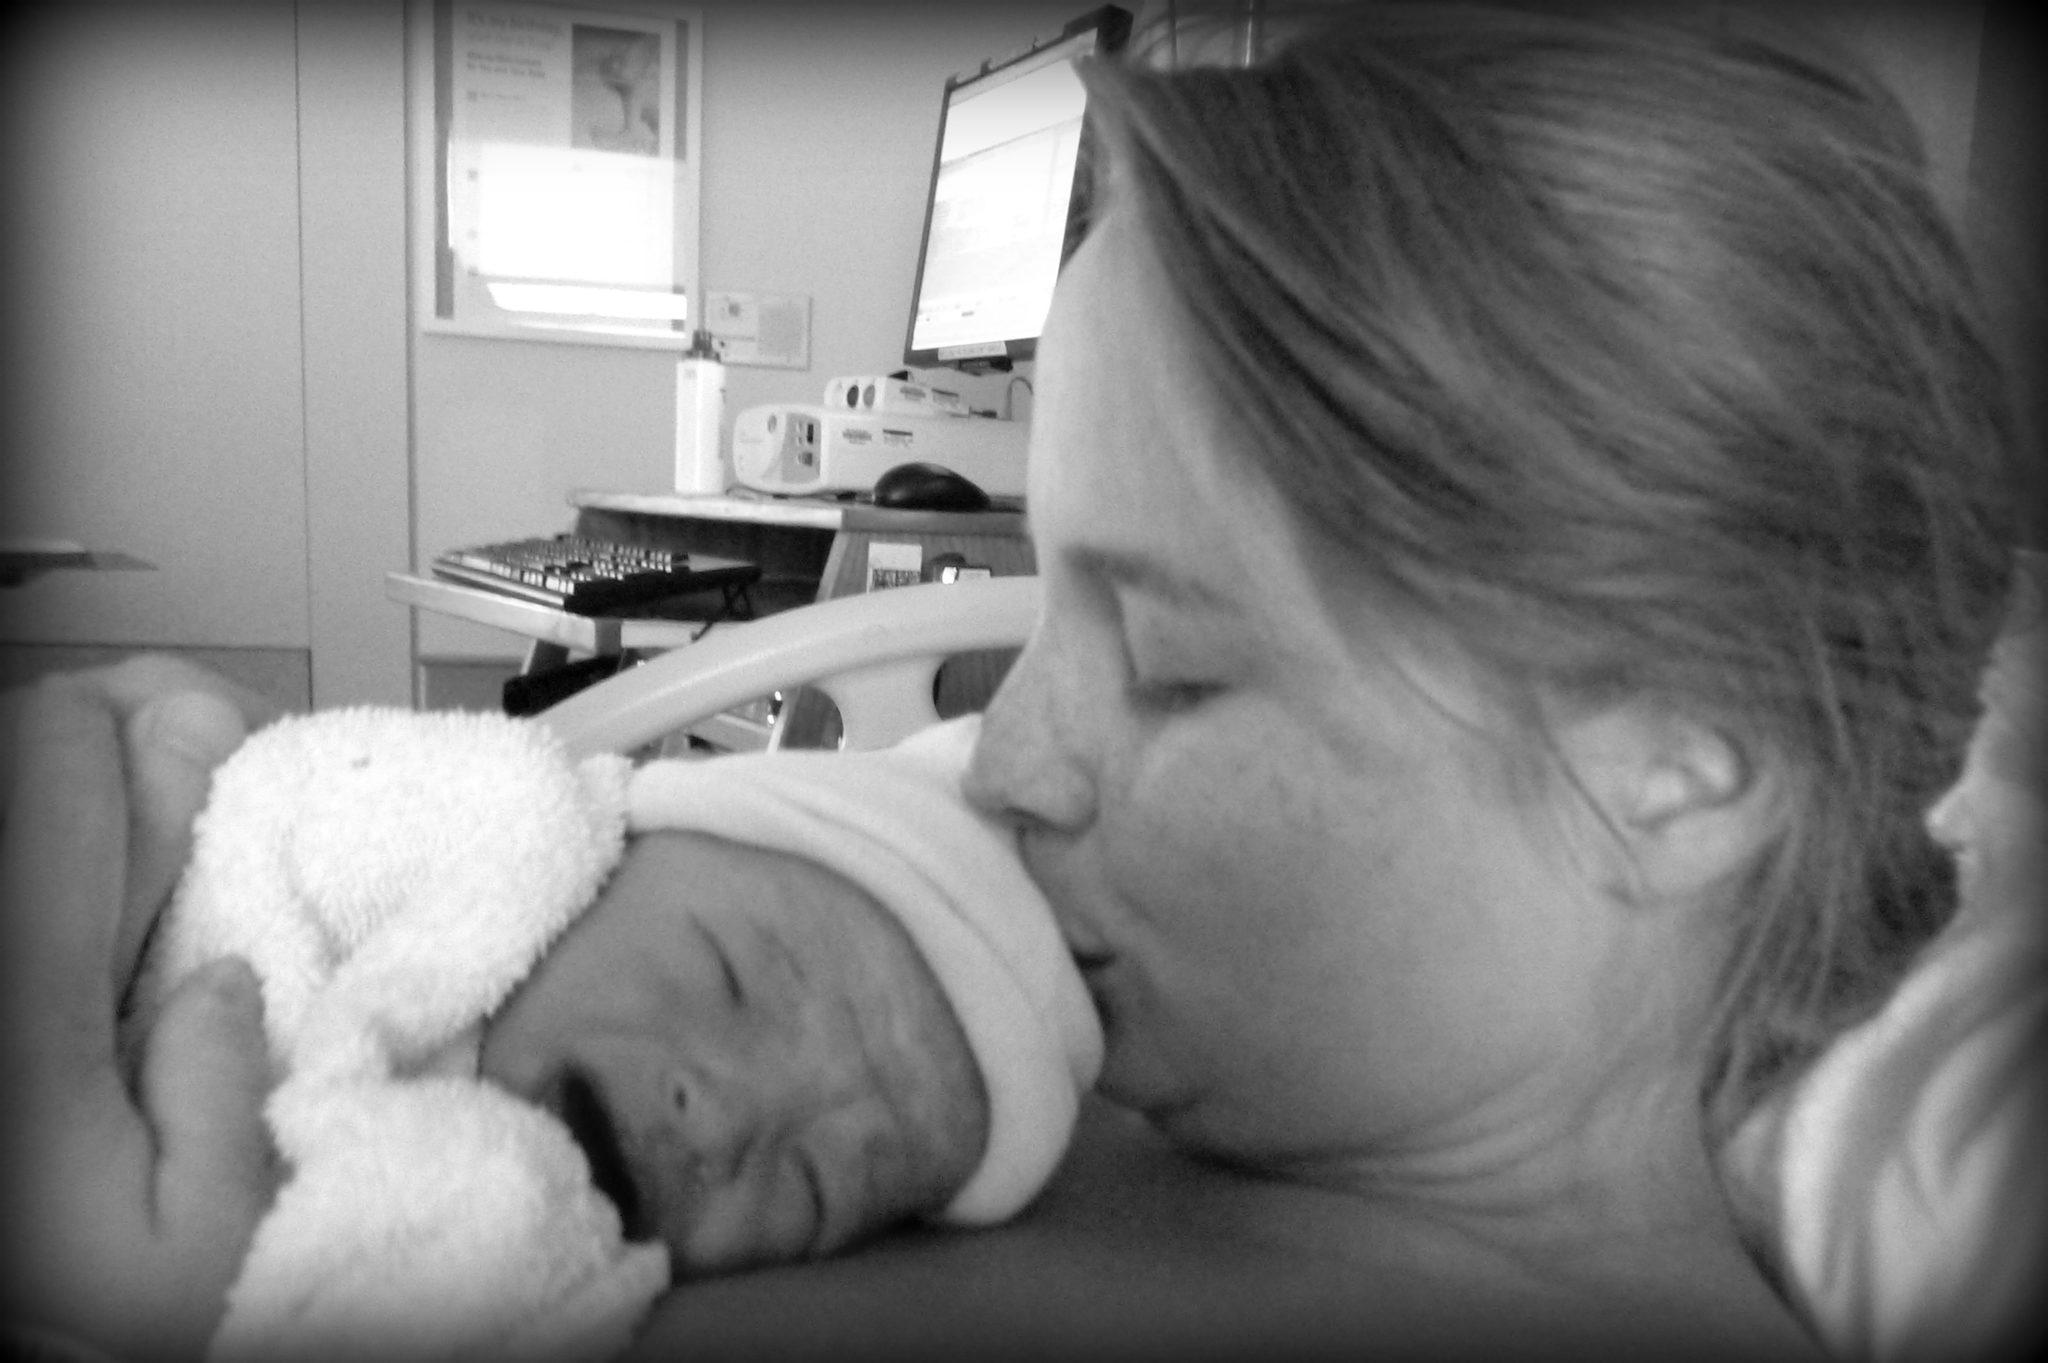 My Natural Birth: Delivery at the Hospital